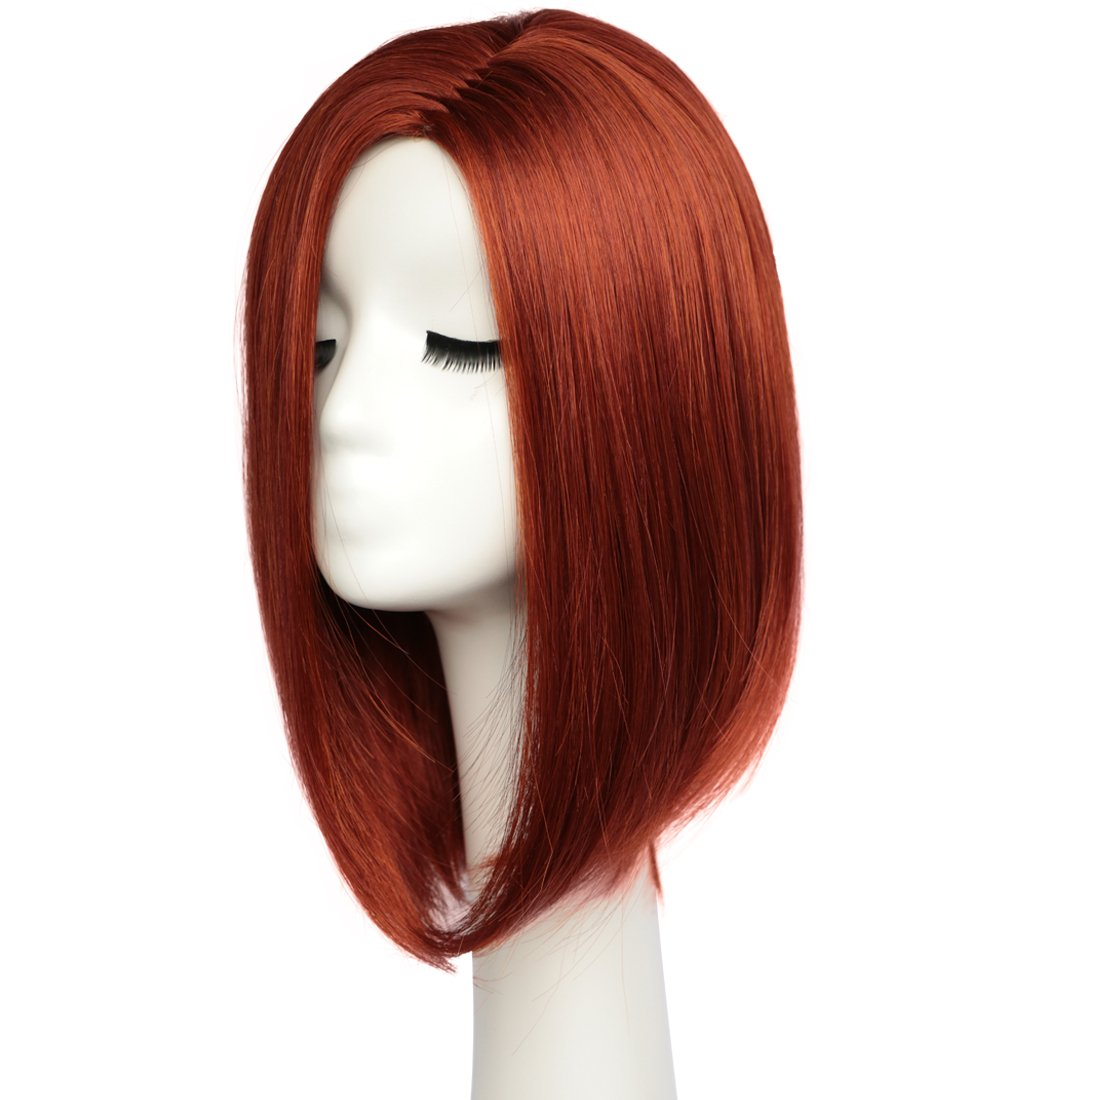 BESTUNG Red Wig Short Bob Wigs Straight Hair Wigs for Women Party Cosplay Accessories Full Wig Natural Looking with Wig Cap 13 Inches by BESTUNG